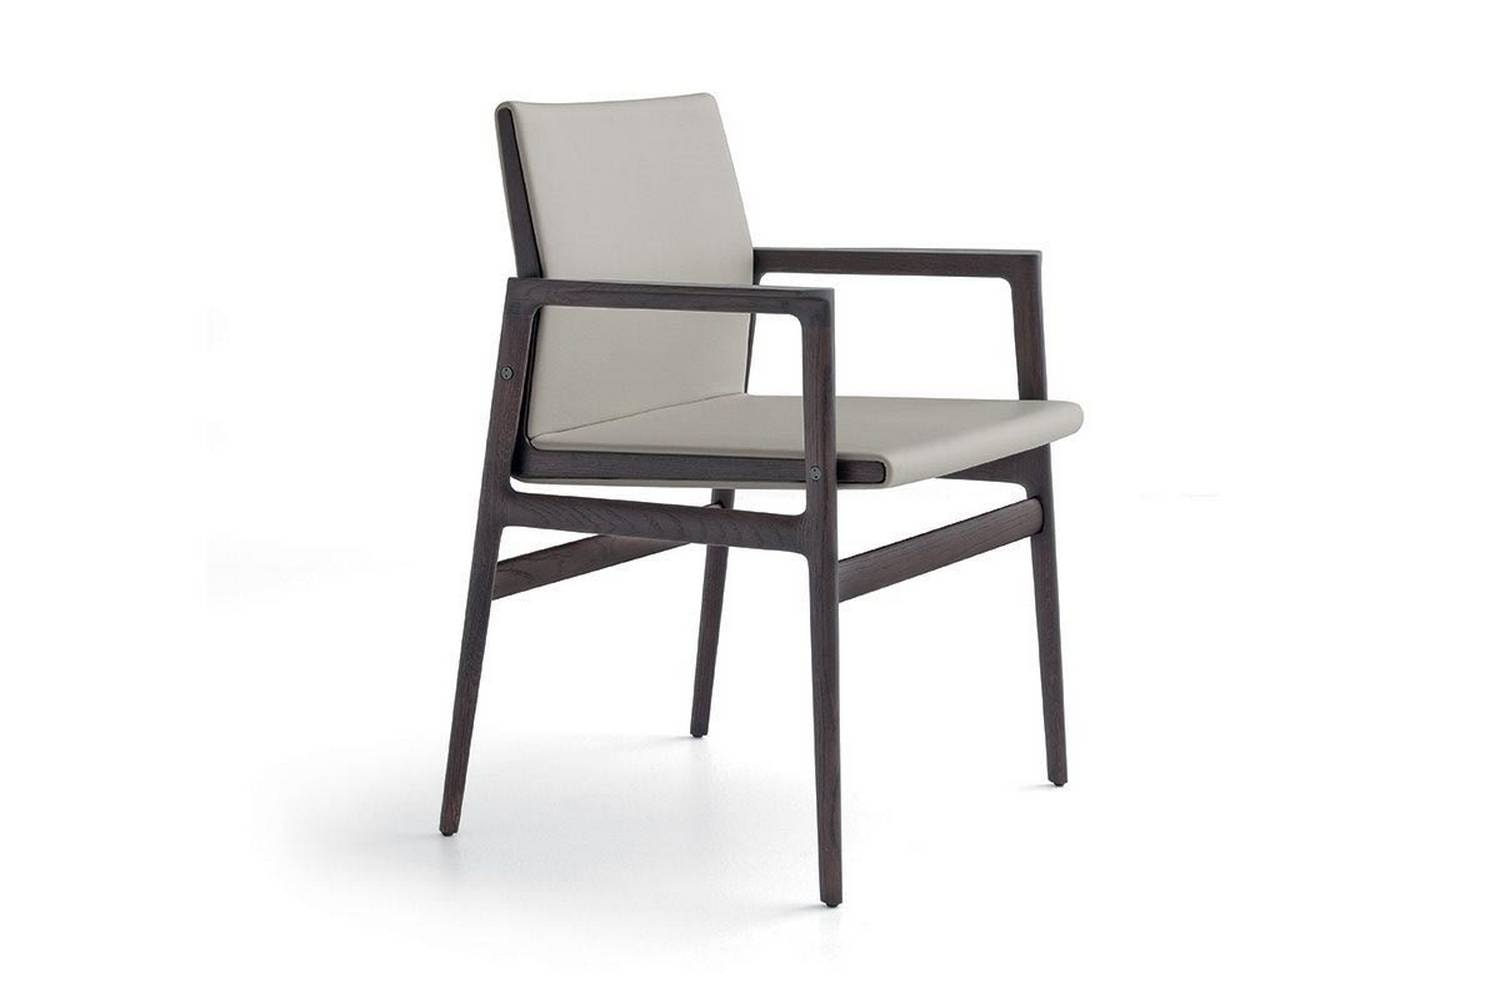 Ipanema Chair with Arms by J. M. Massaud for Poliform